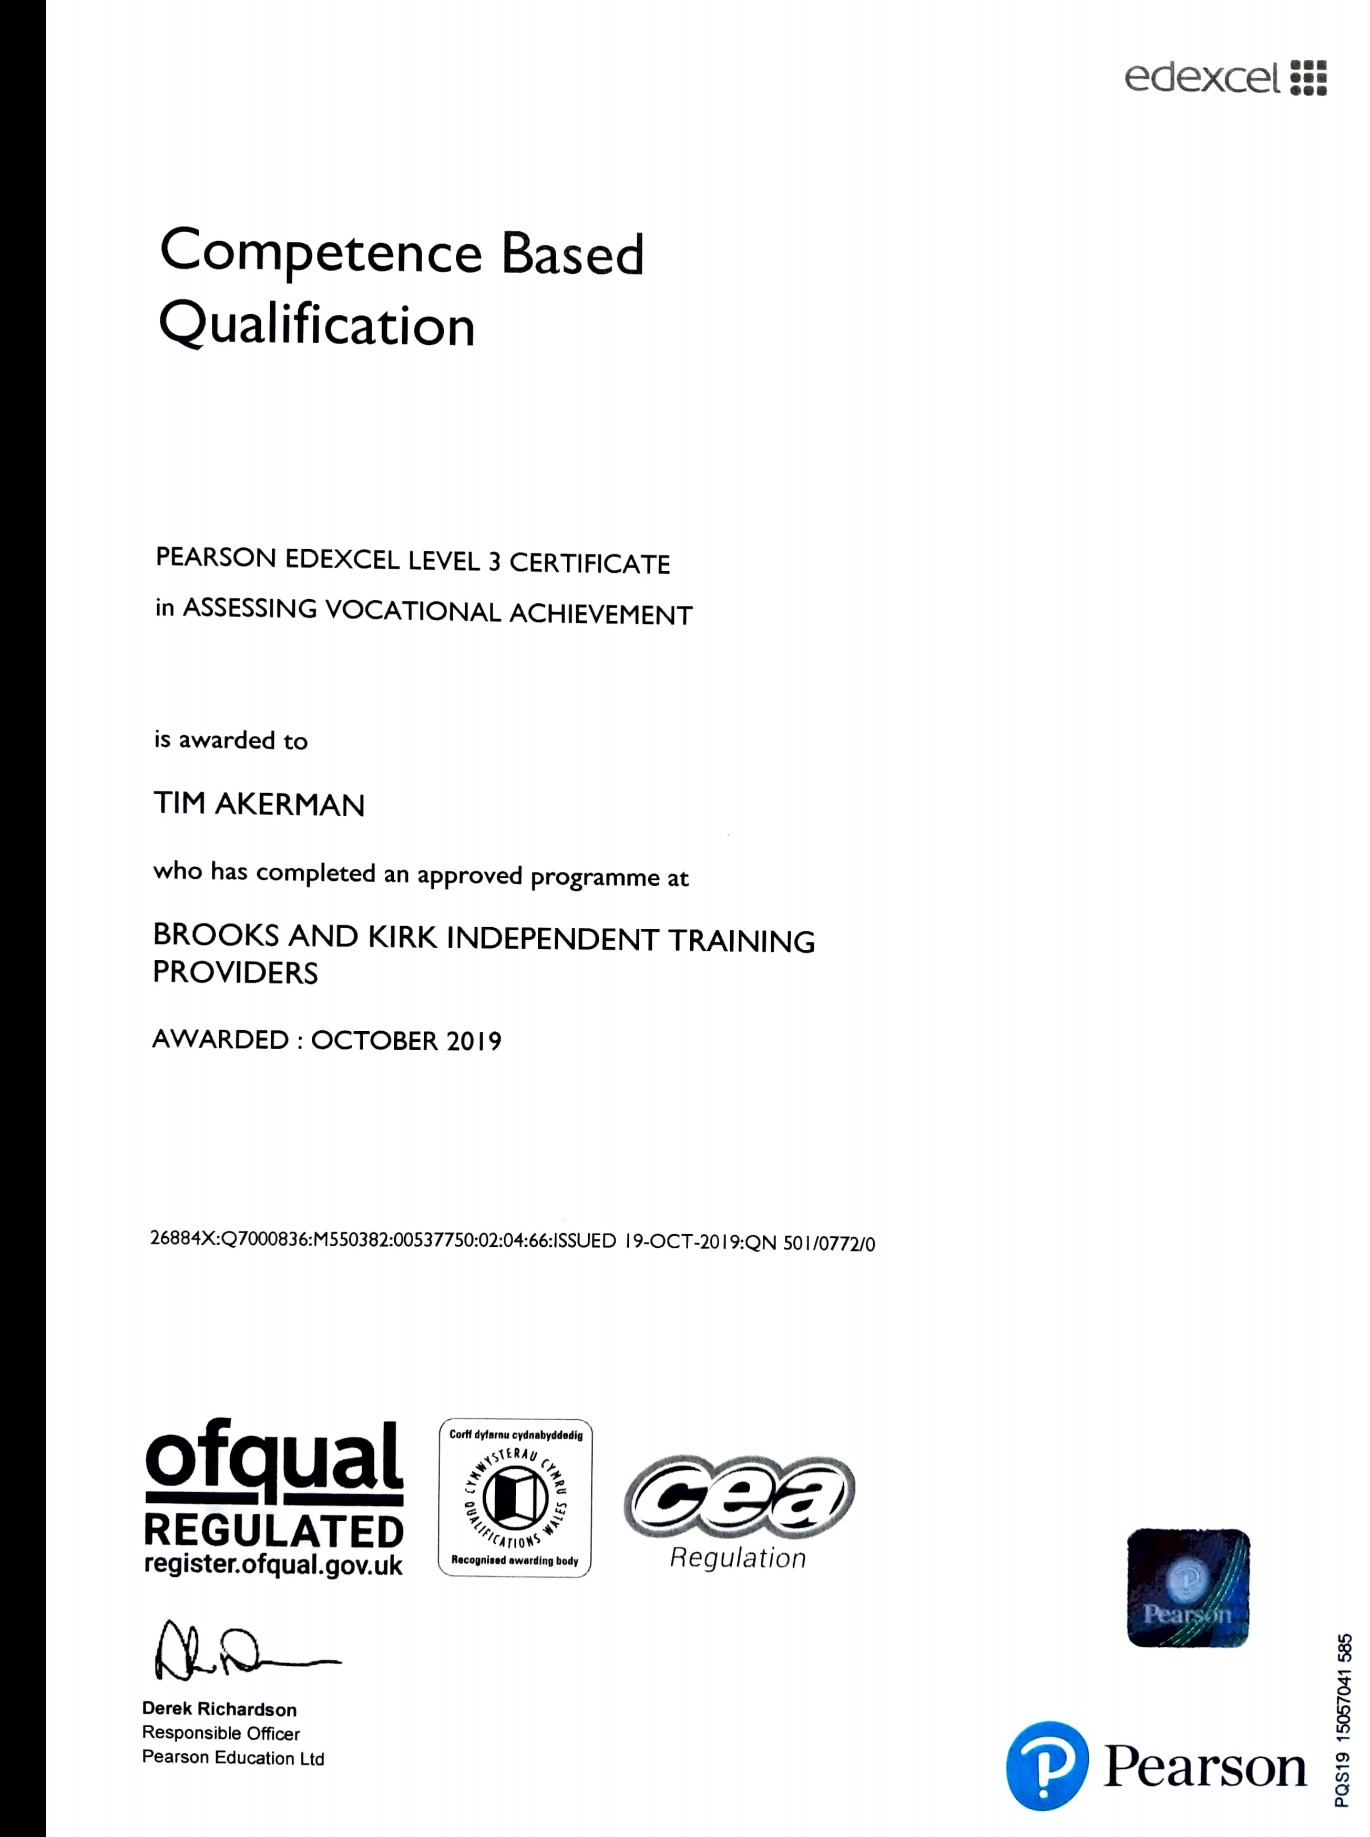 Tim Akerman certified as trainer and NVQ Assessor